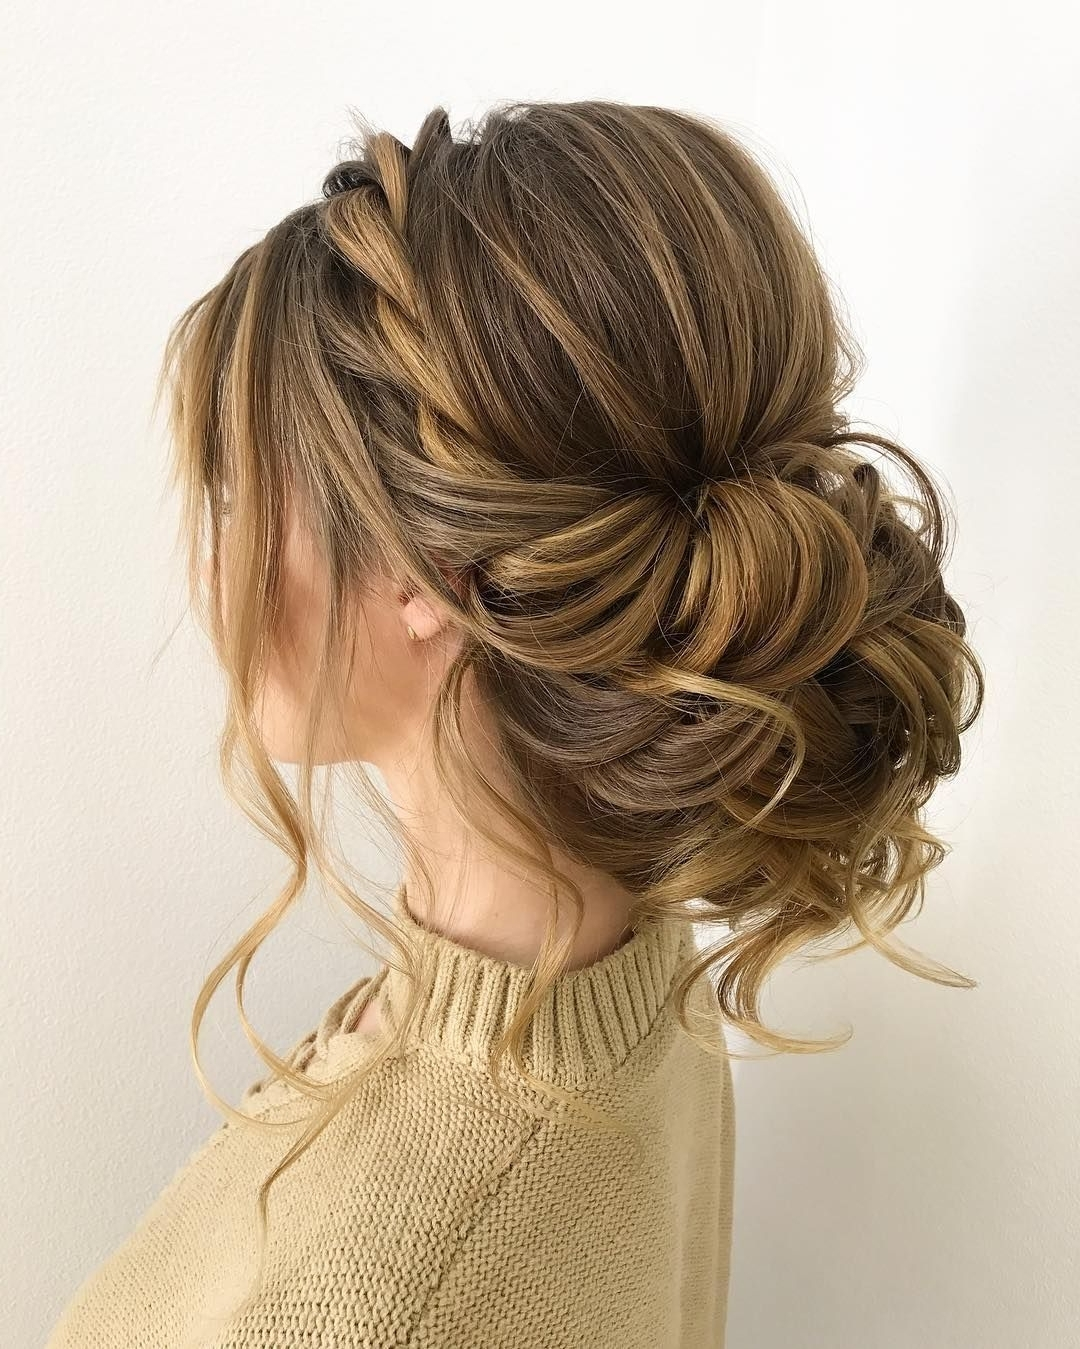 Gorgeous Wedding Updo Hairstyles That Will Wow Your Big Day Pertaining To Bridesmaid Updo Hairstyles (View 7 of 15)